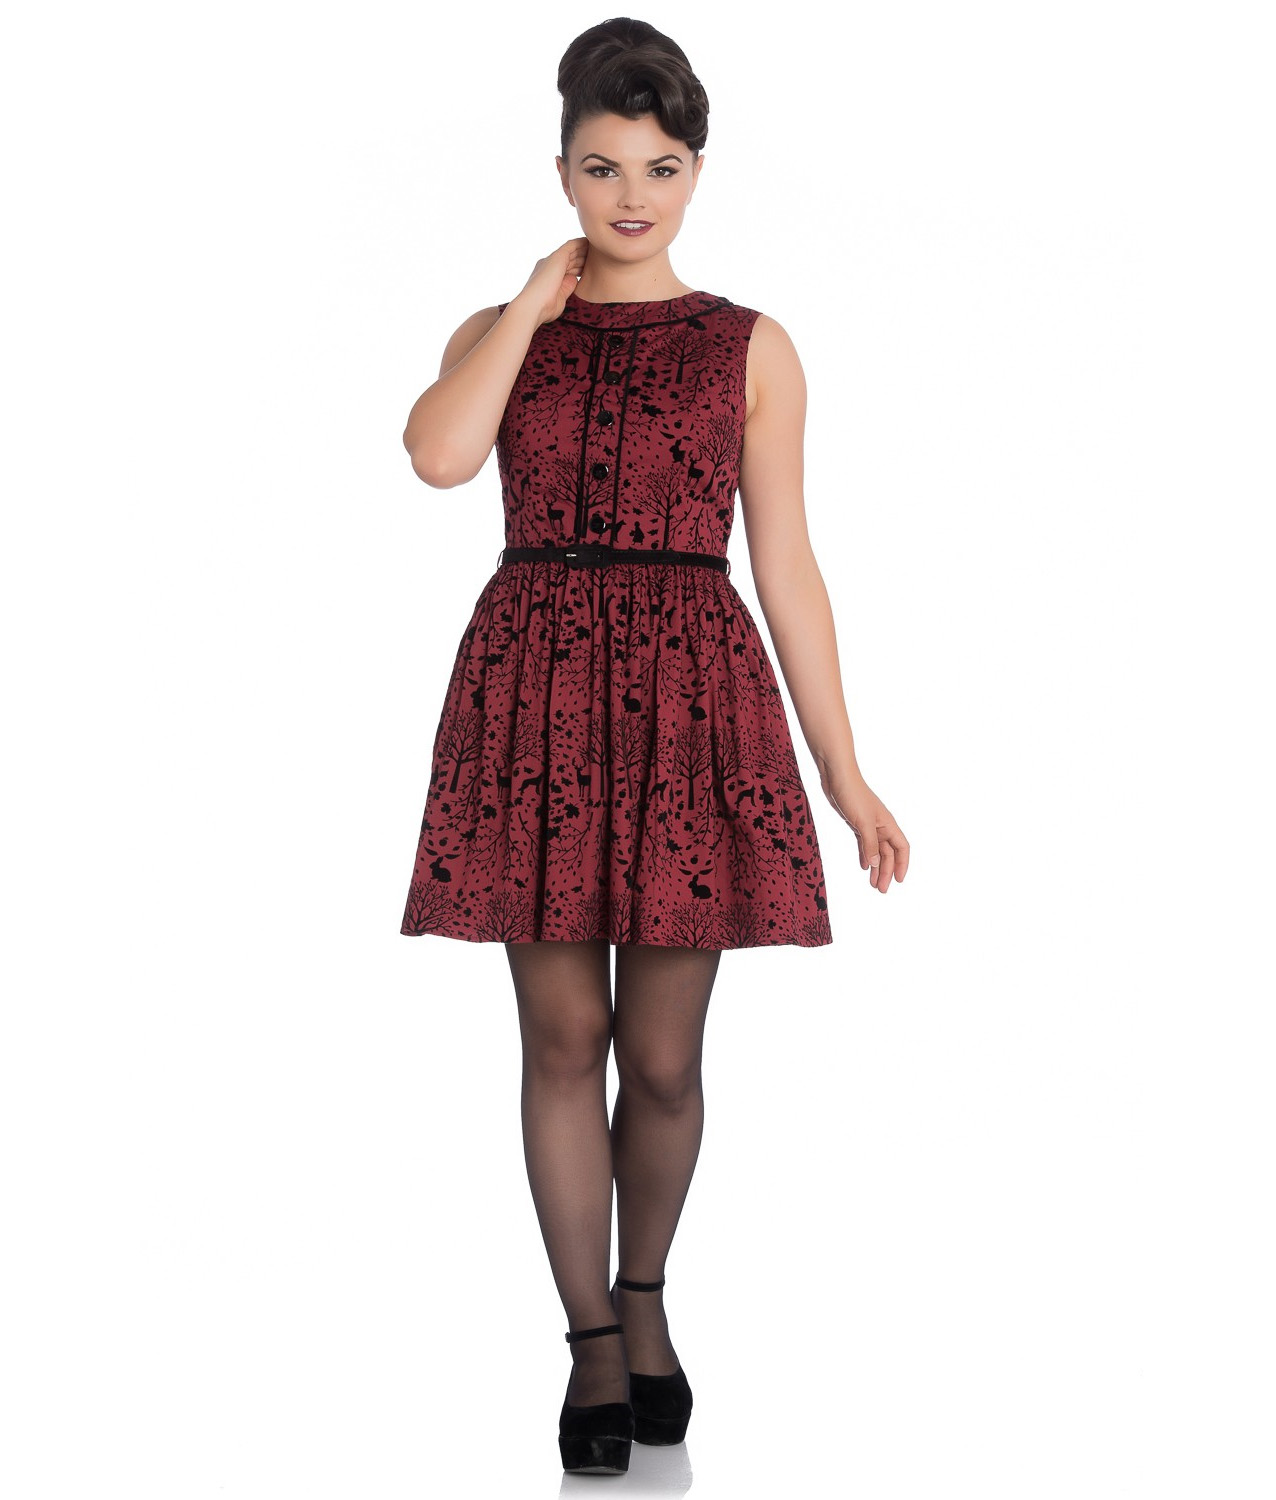 Hell-Bunny-50s-Mini-Skater-Dress-Woodland-Trees-SHERWOOD-Black-Red-All-Sizes thumbnail 11